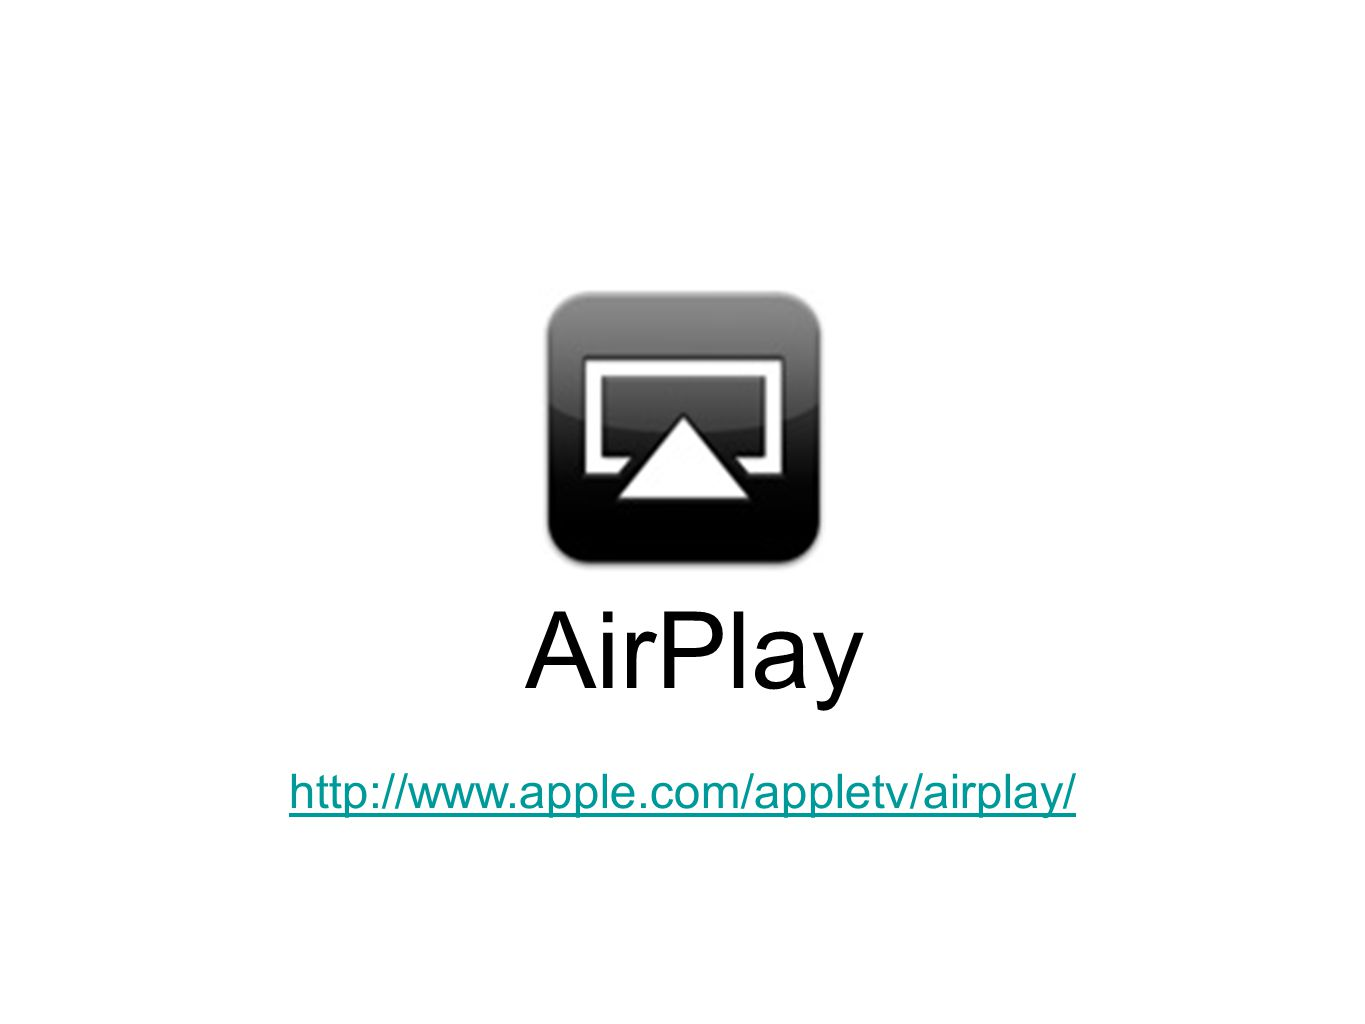 AirPlay http://www.apple.com/appletv/airplay/